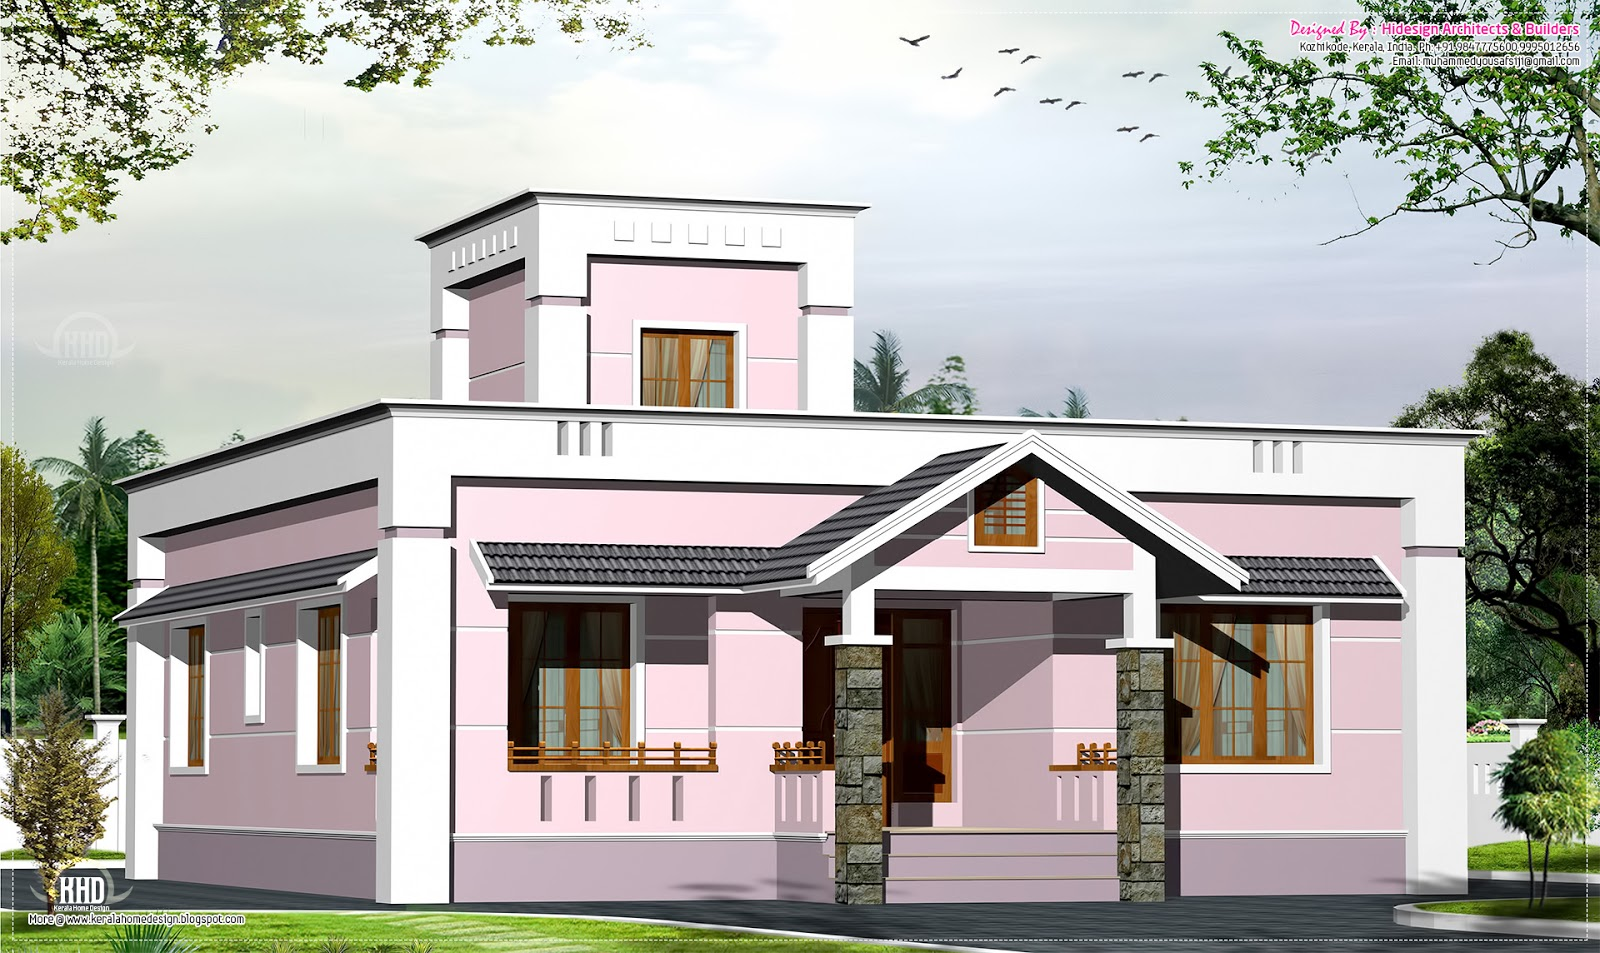 Kerala home design and floor plans 1484 south for Villa design plan